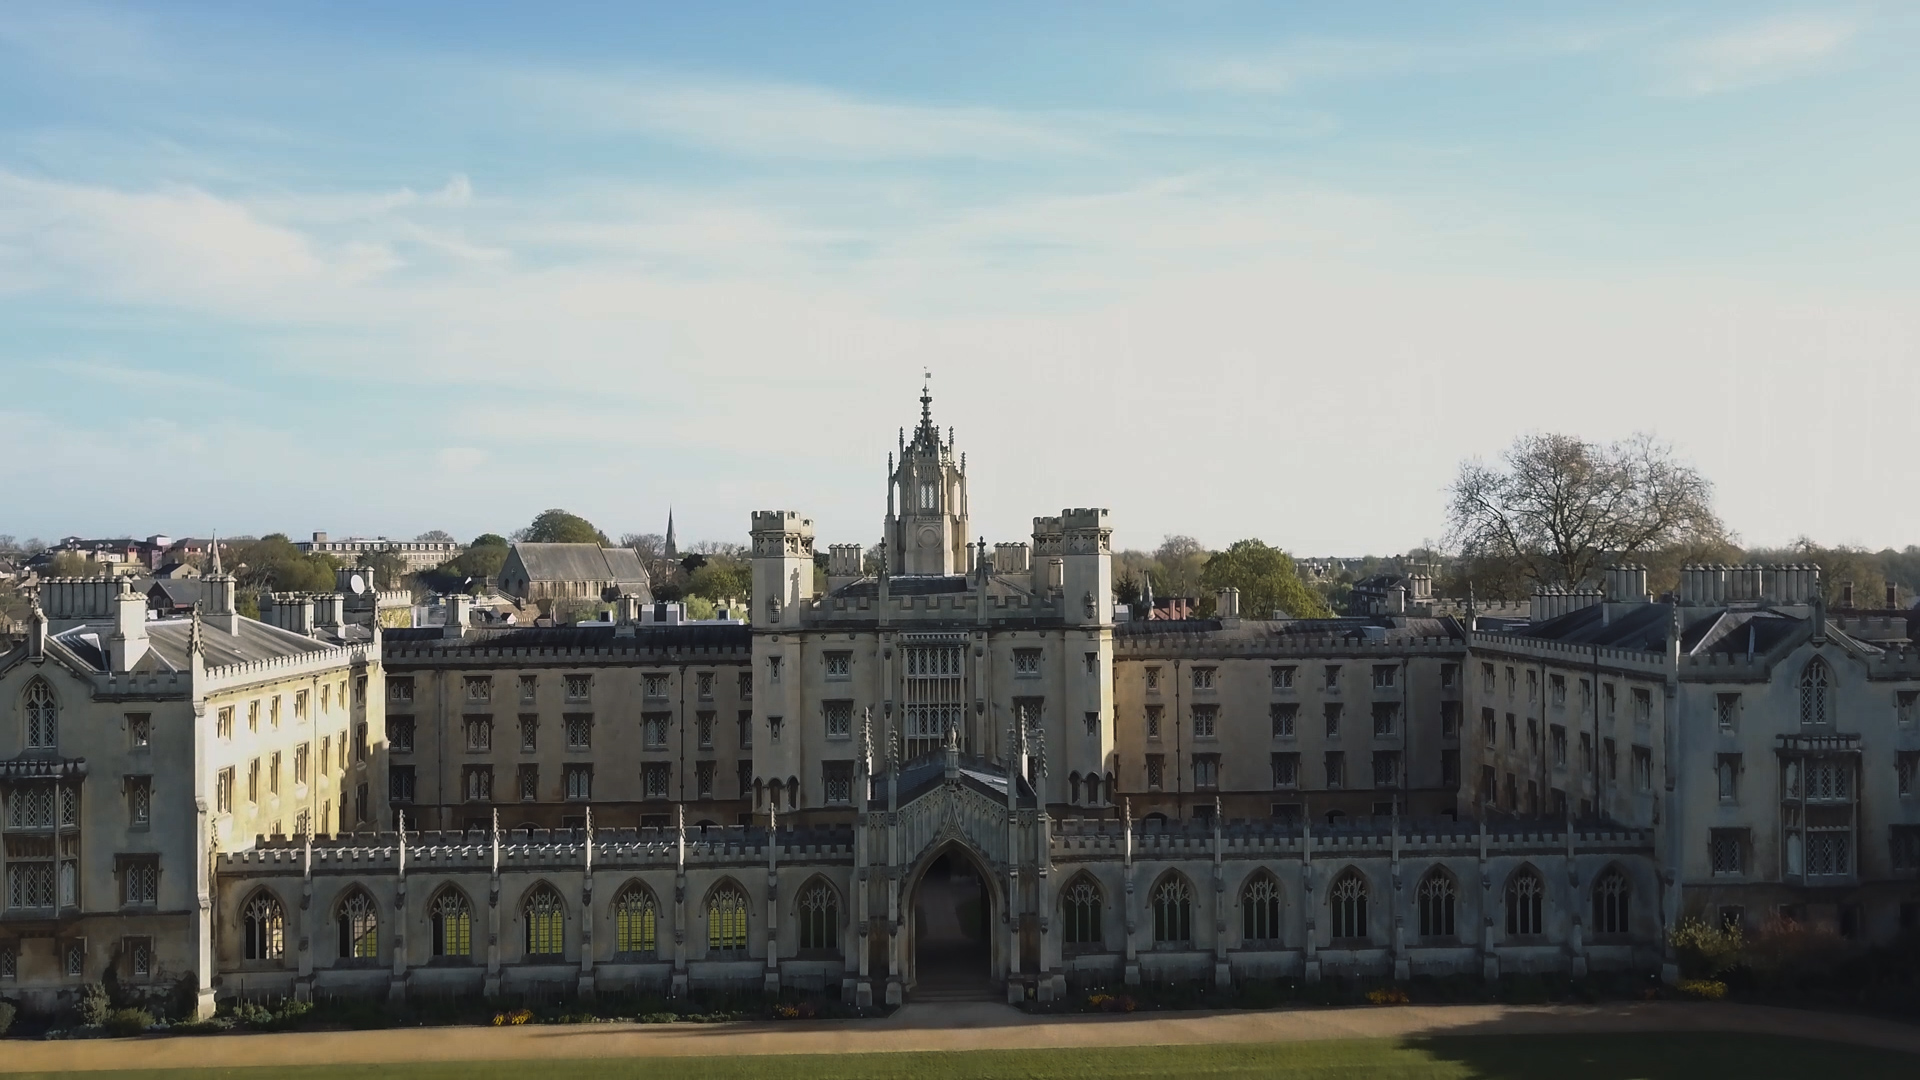 wedding video from St. John's college Cambridge